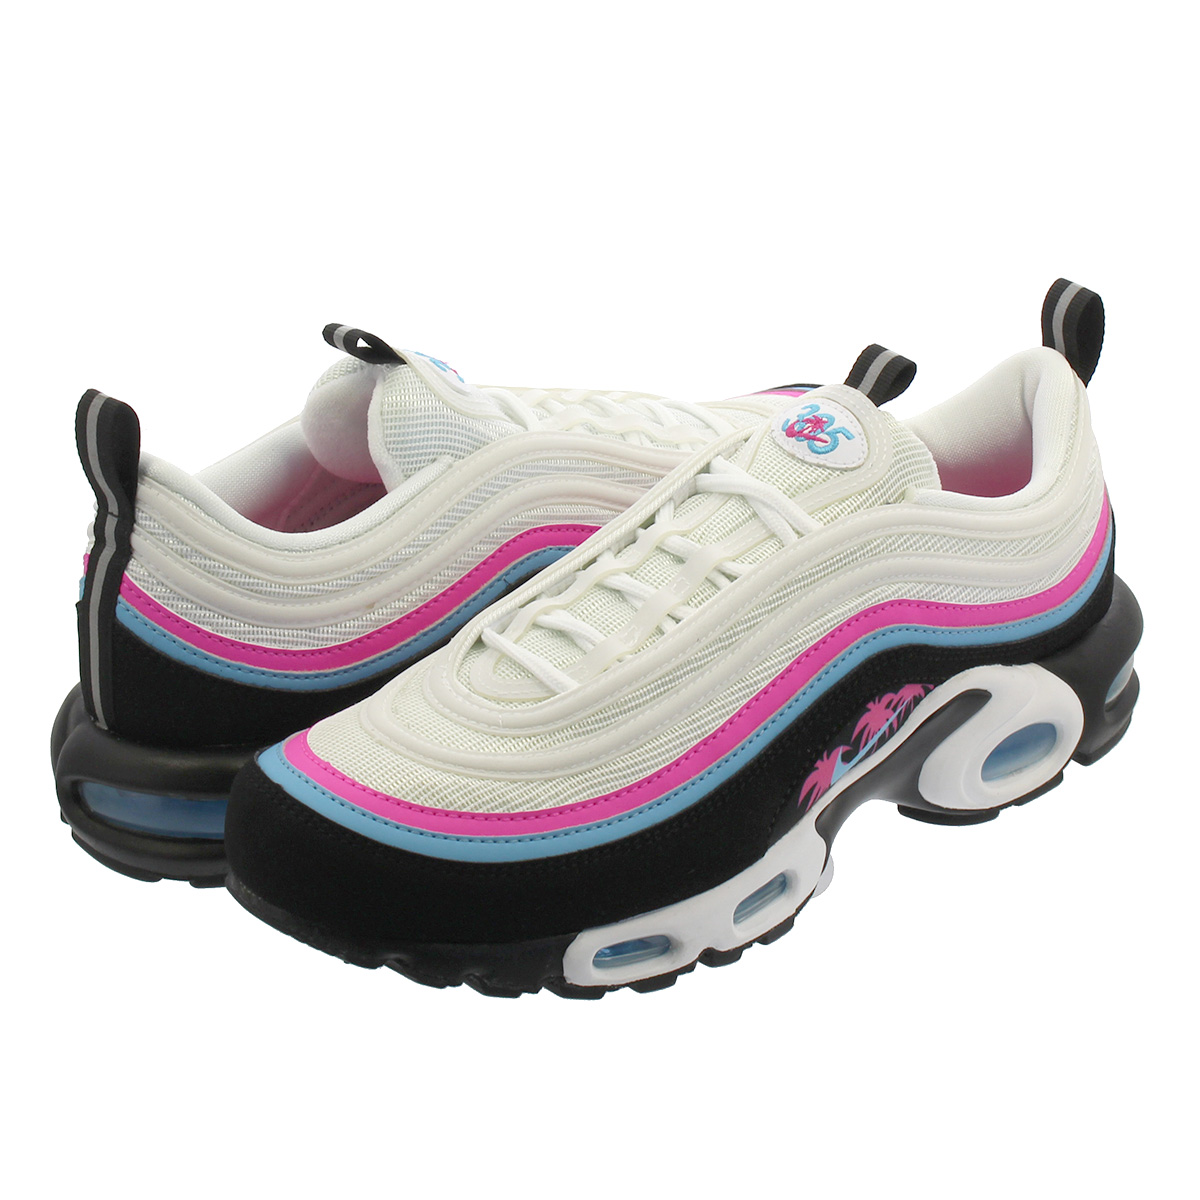 NIKE AIR MAX PLUS 97 Kie Ney AMAX +97 WHITE BLUE GALE BLACK LASER FUCHSIA  av7936-101 7657512a3